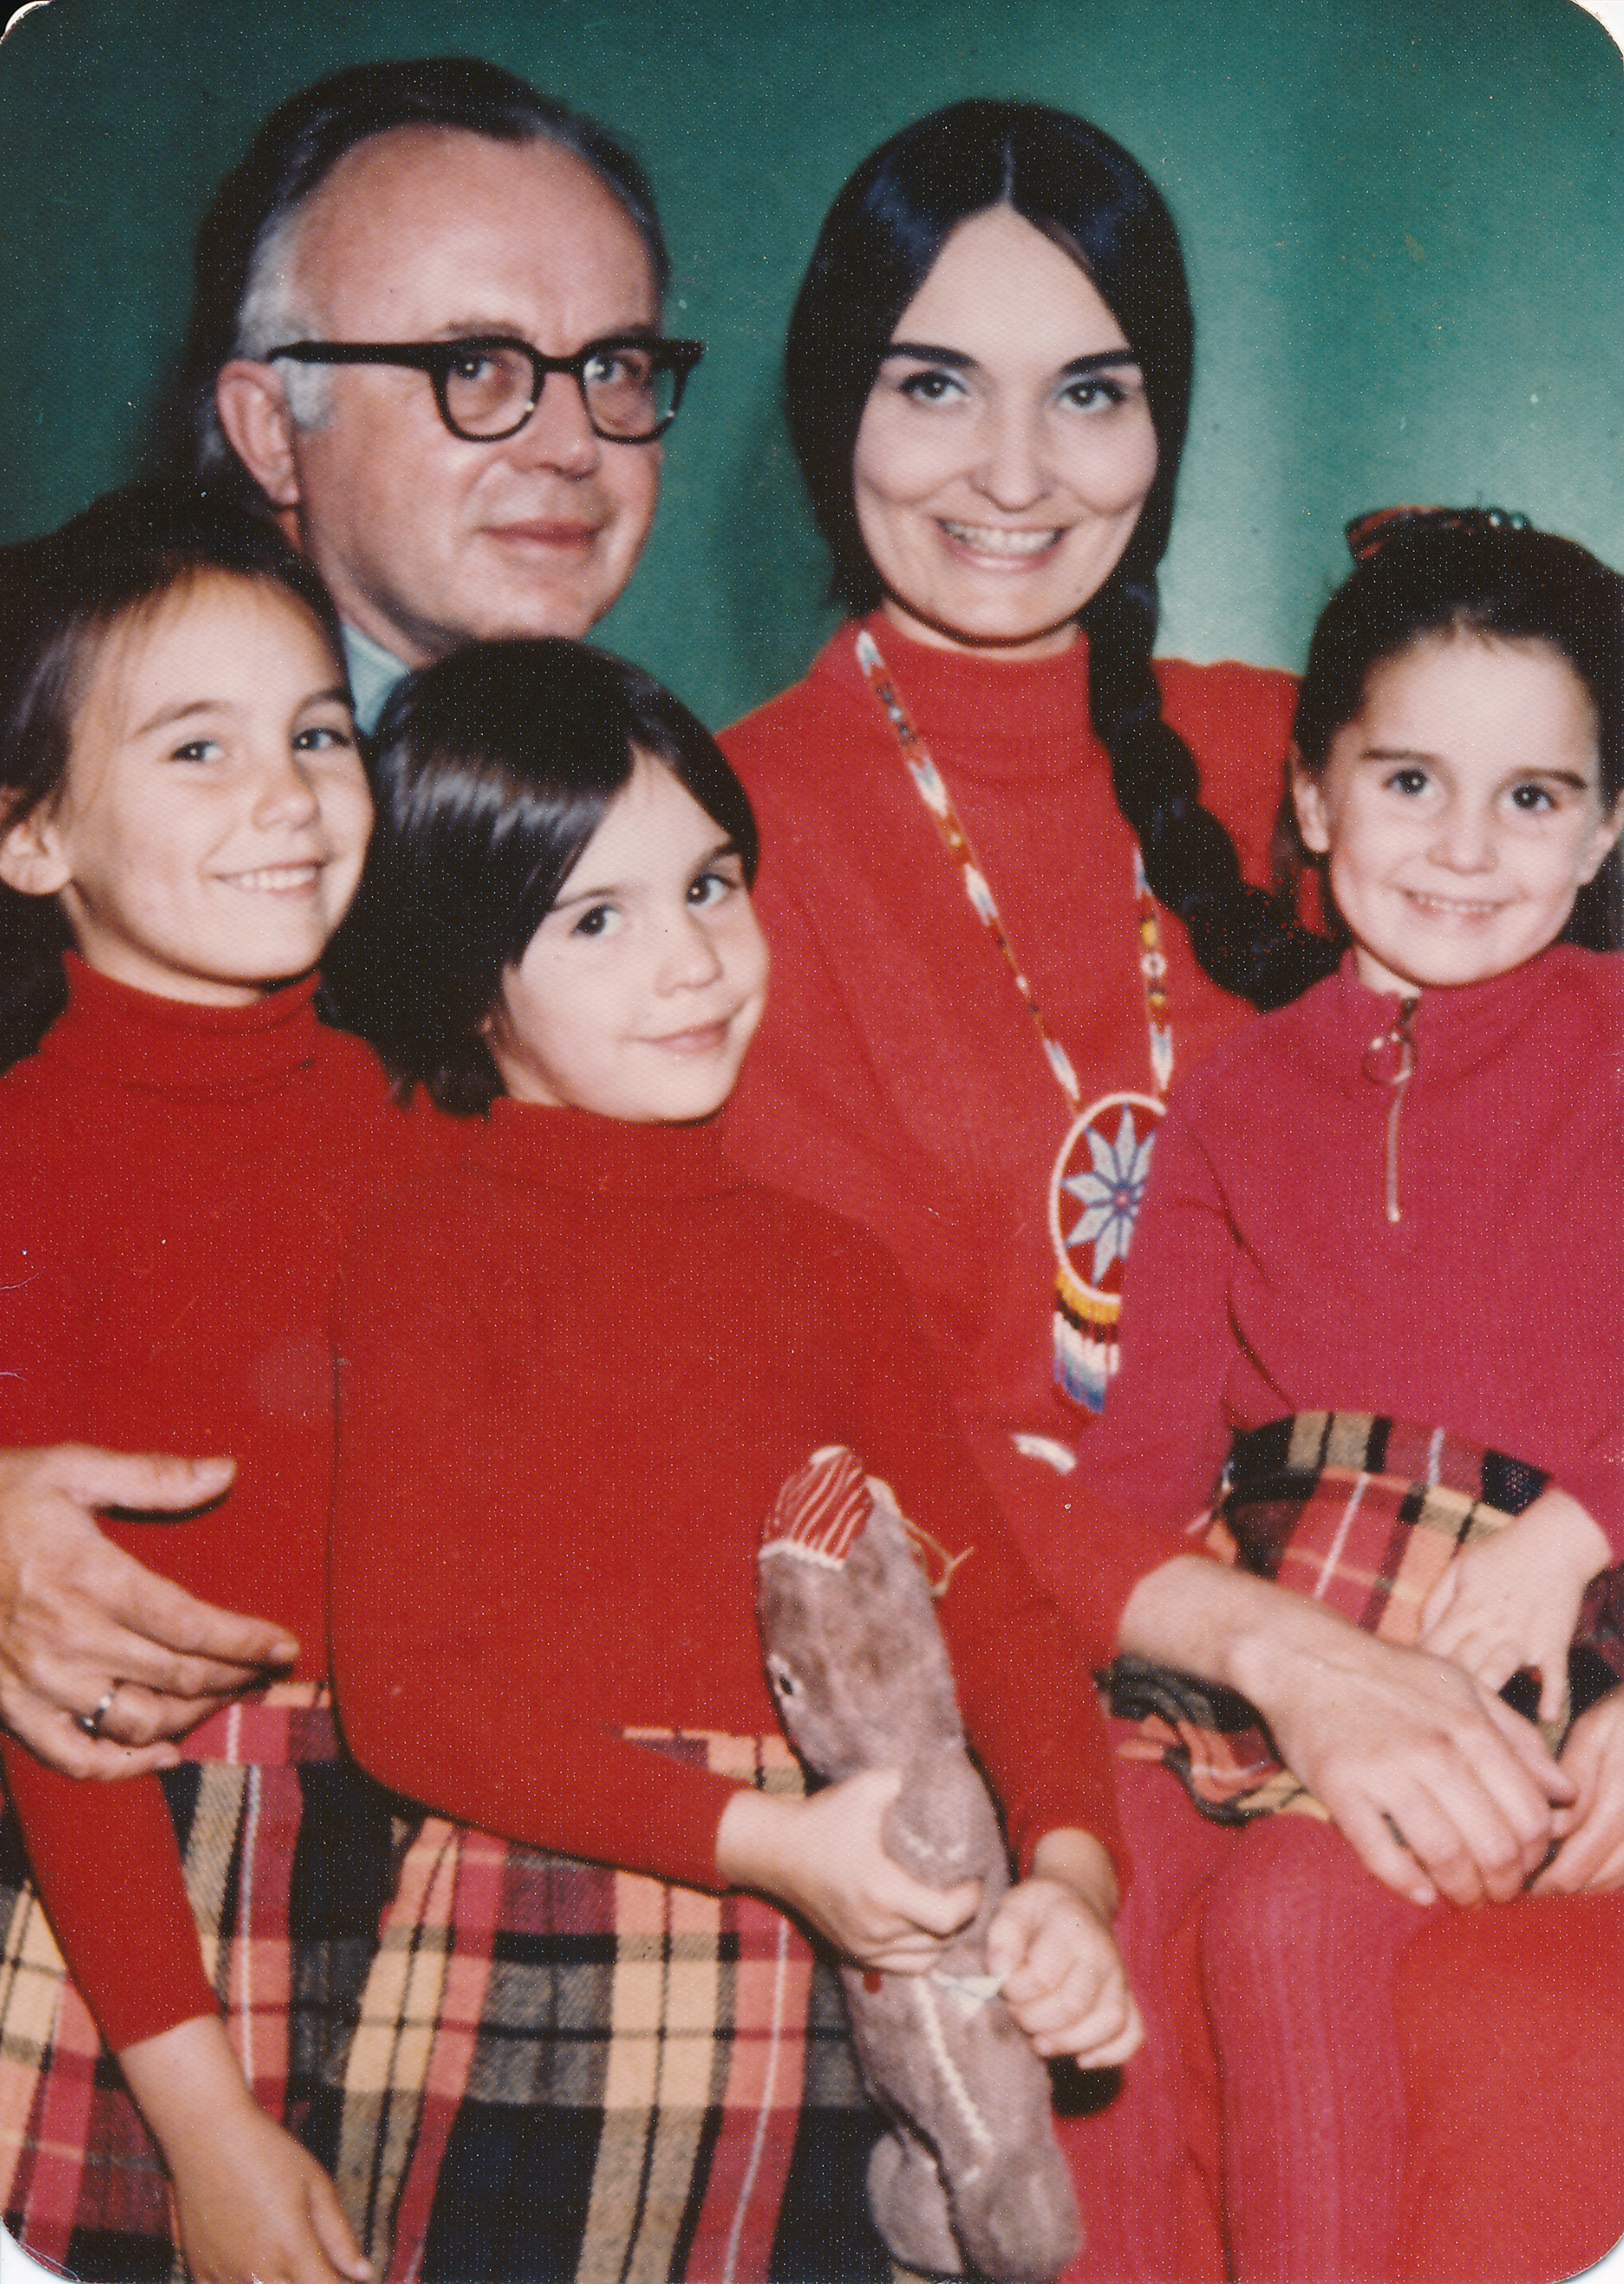 The Kirk family in the early 1970s.